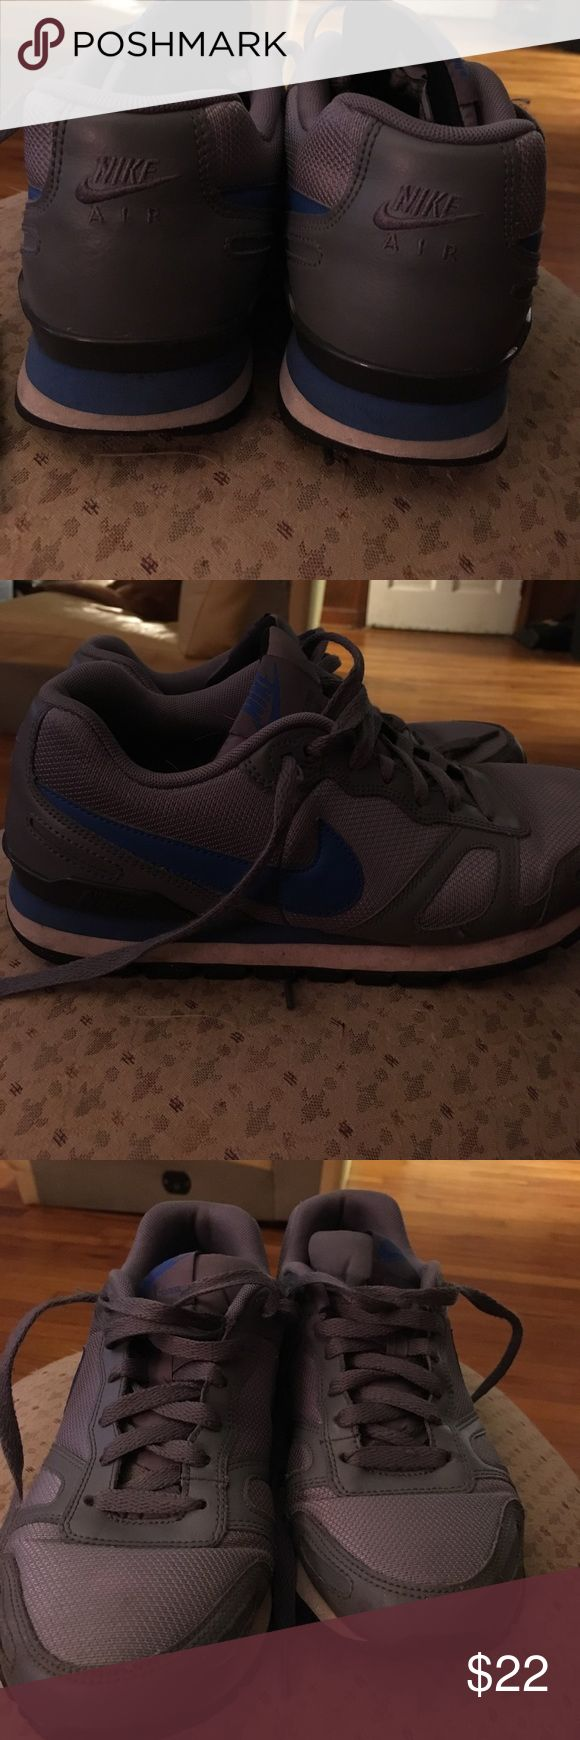 Nike Waffle Trainers men's size 8 Slightly Worn still in tremendously good shape Nike Waffle Trainers grey with blue.  Wicked comfortable. No trades , reasonable offers accepted.  Size 8 Men's I wear women's 8.5-9 so just depends on your foot Nike Shoes Athletic Shoes